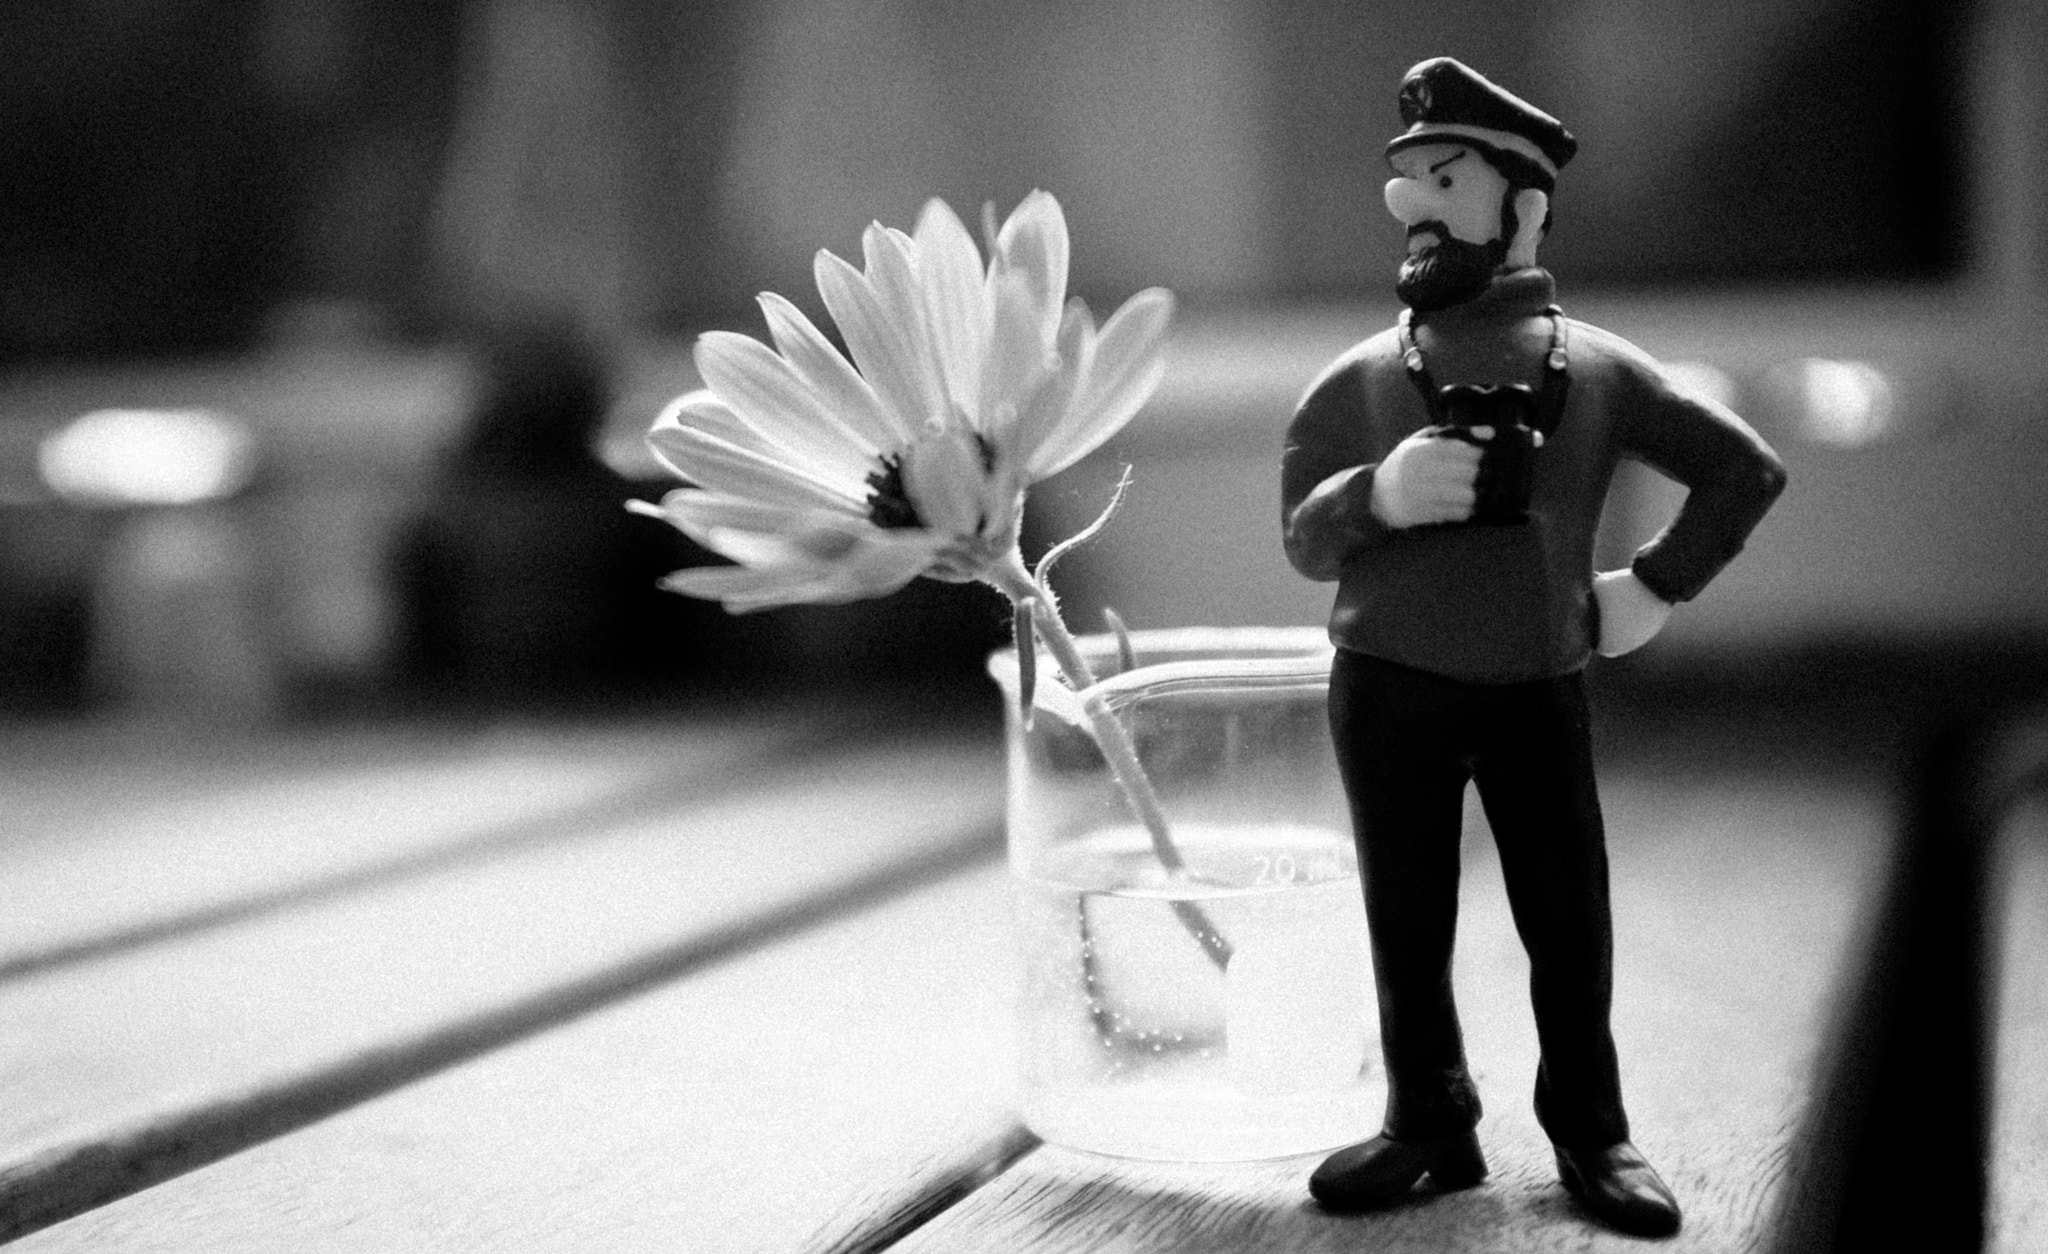 Photograph The Captain and the Flower by Mark Prince on 500px